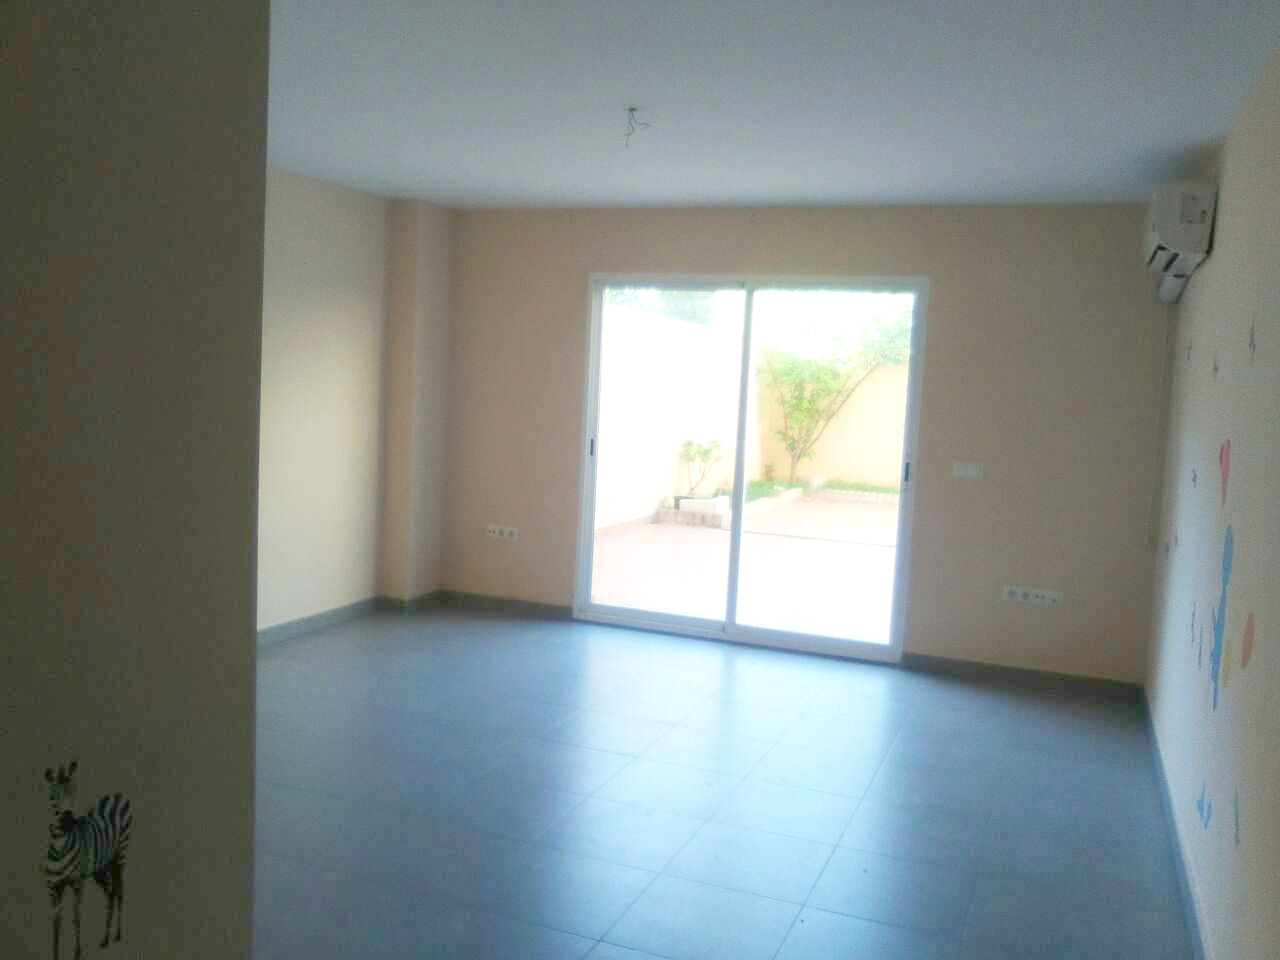 Photo  number 14: Townhouse in Sale in Sanet y Negrals, Area Centro. Ref. 5-18-14319 (79525-0001)